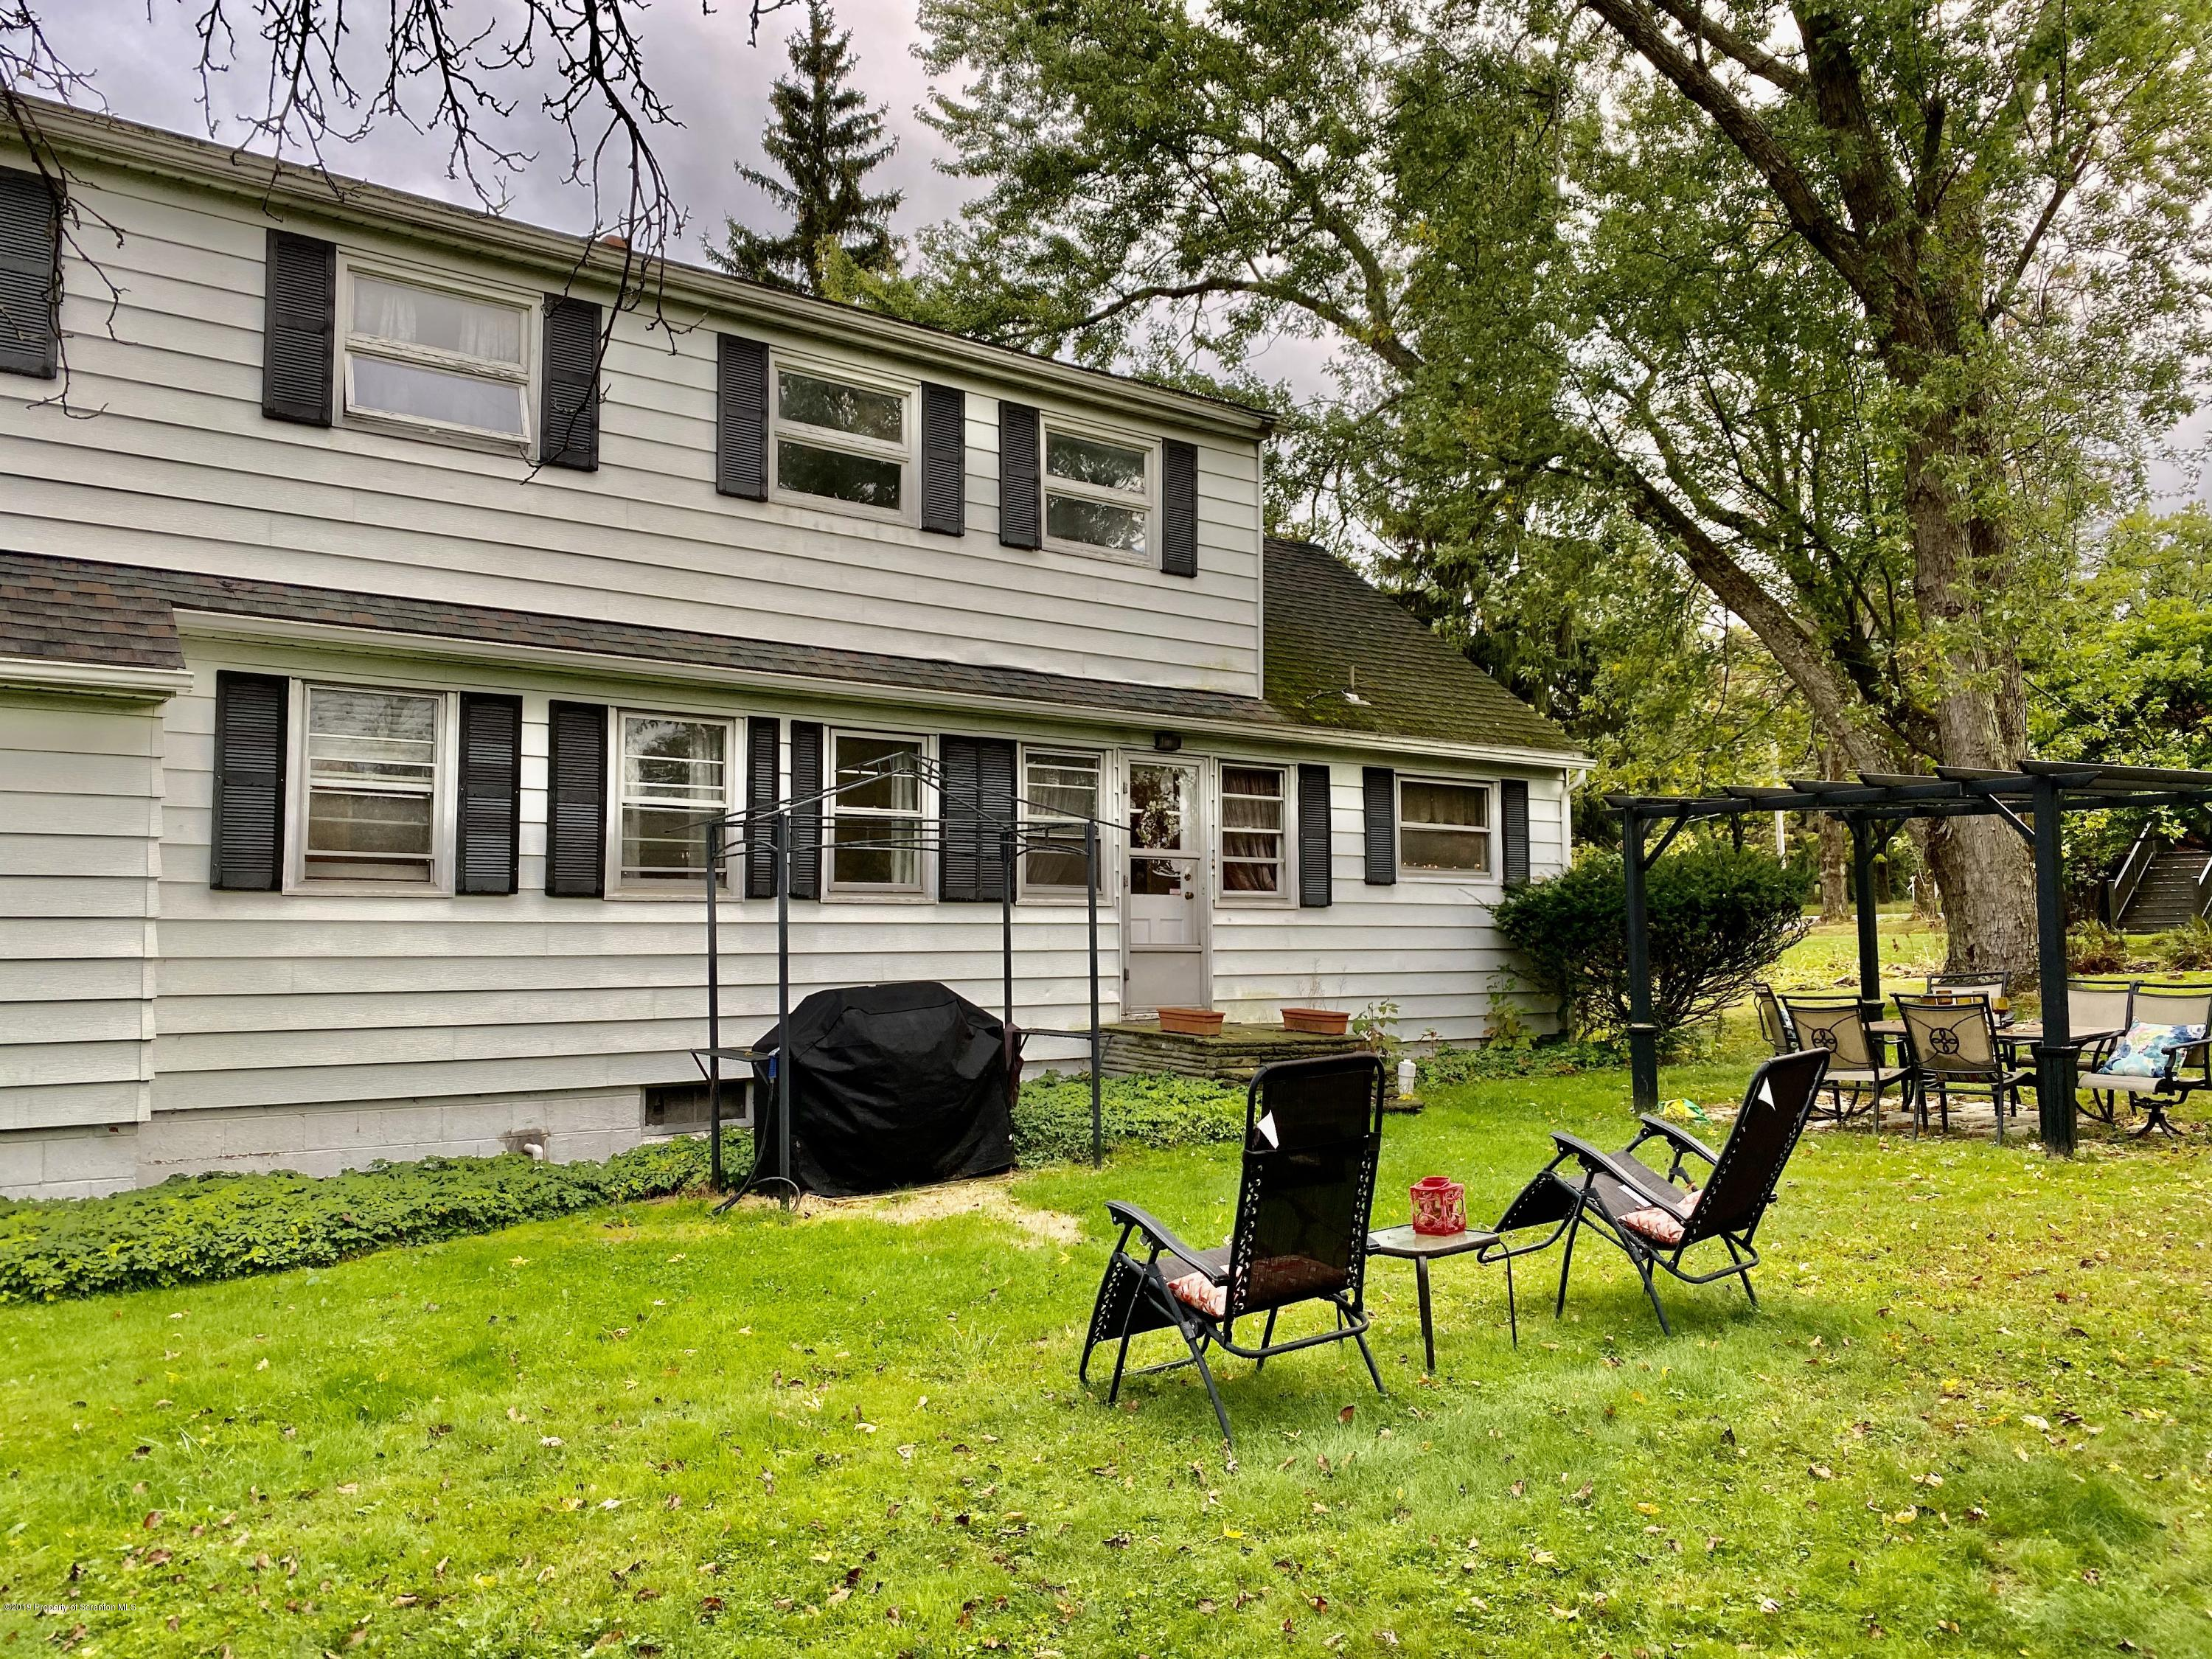 103 Yale Blvd, Clarks Green, Pennsylvania 18411, 4 Bedrooms Bedrooms, 8 Rooms Rooms,2 BathroomsBathrooms,Single Family,For Sale,Yale,19-4812